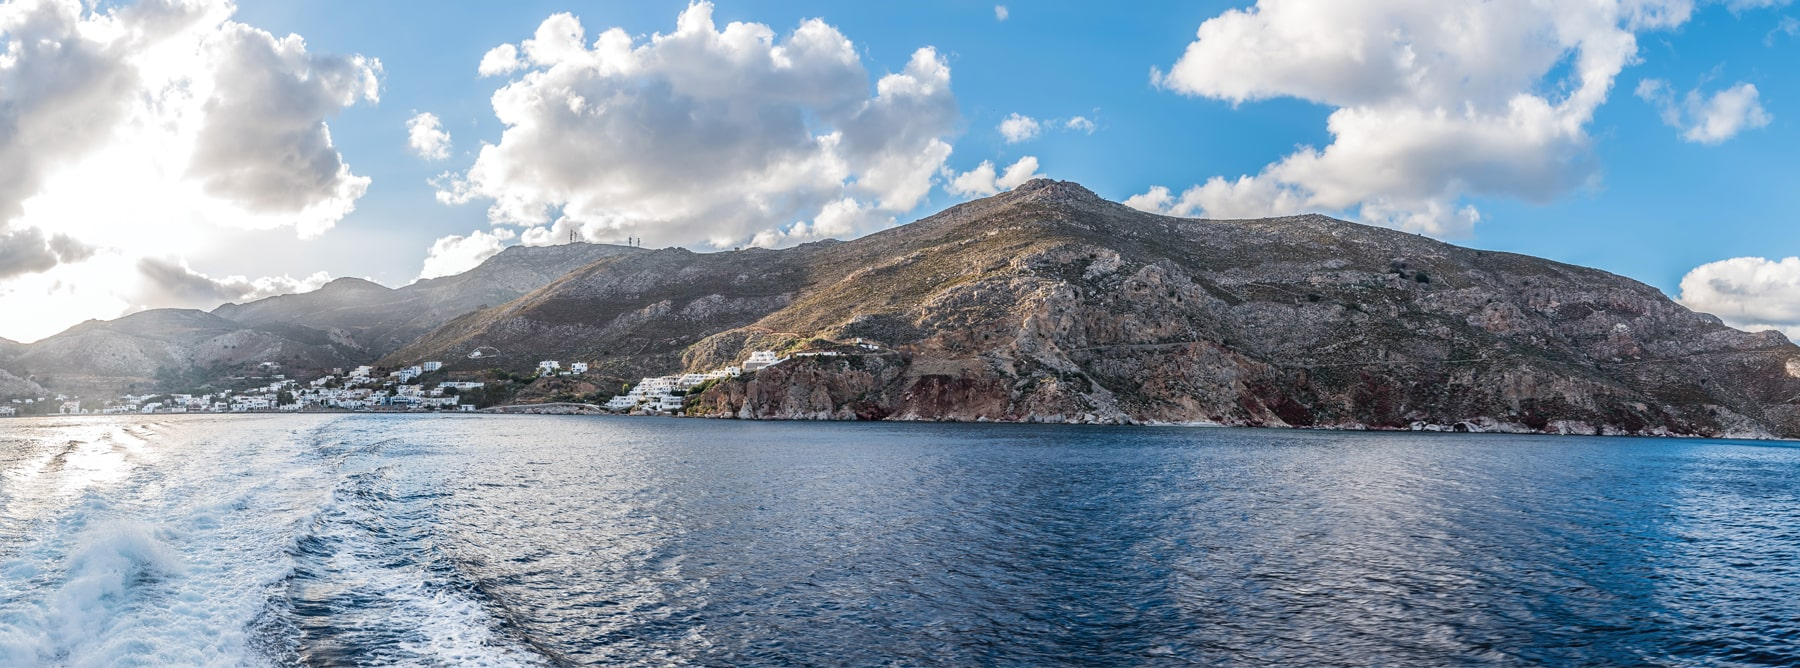 With an EU grant,the Greek island of Tilos leads renewables energy drive